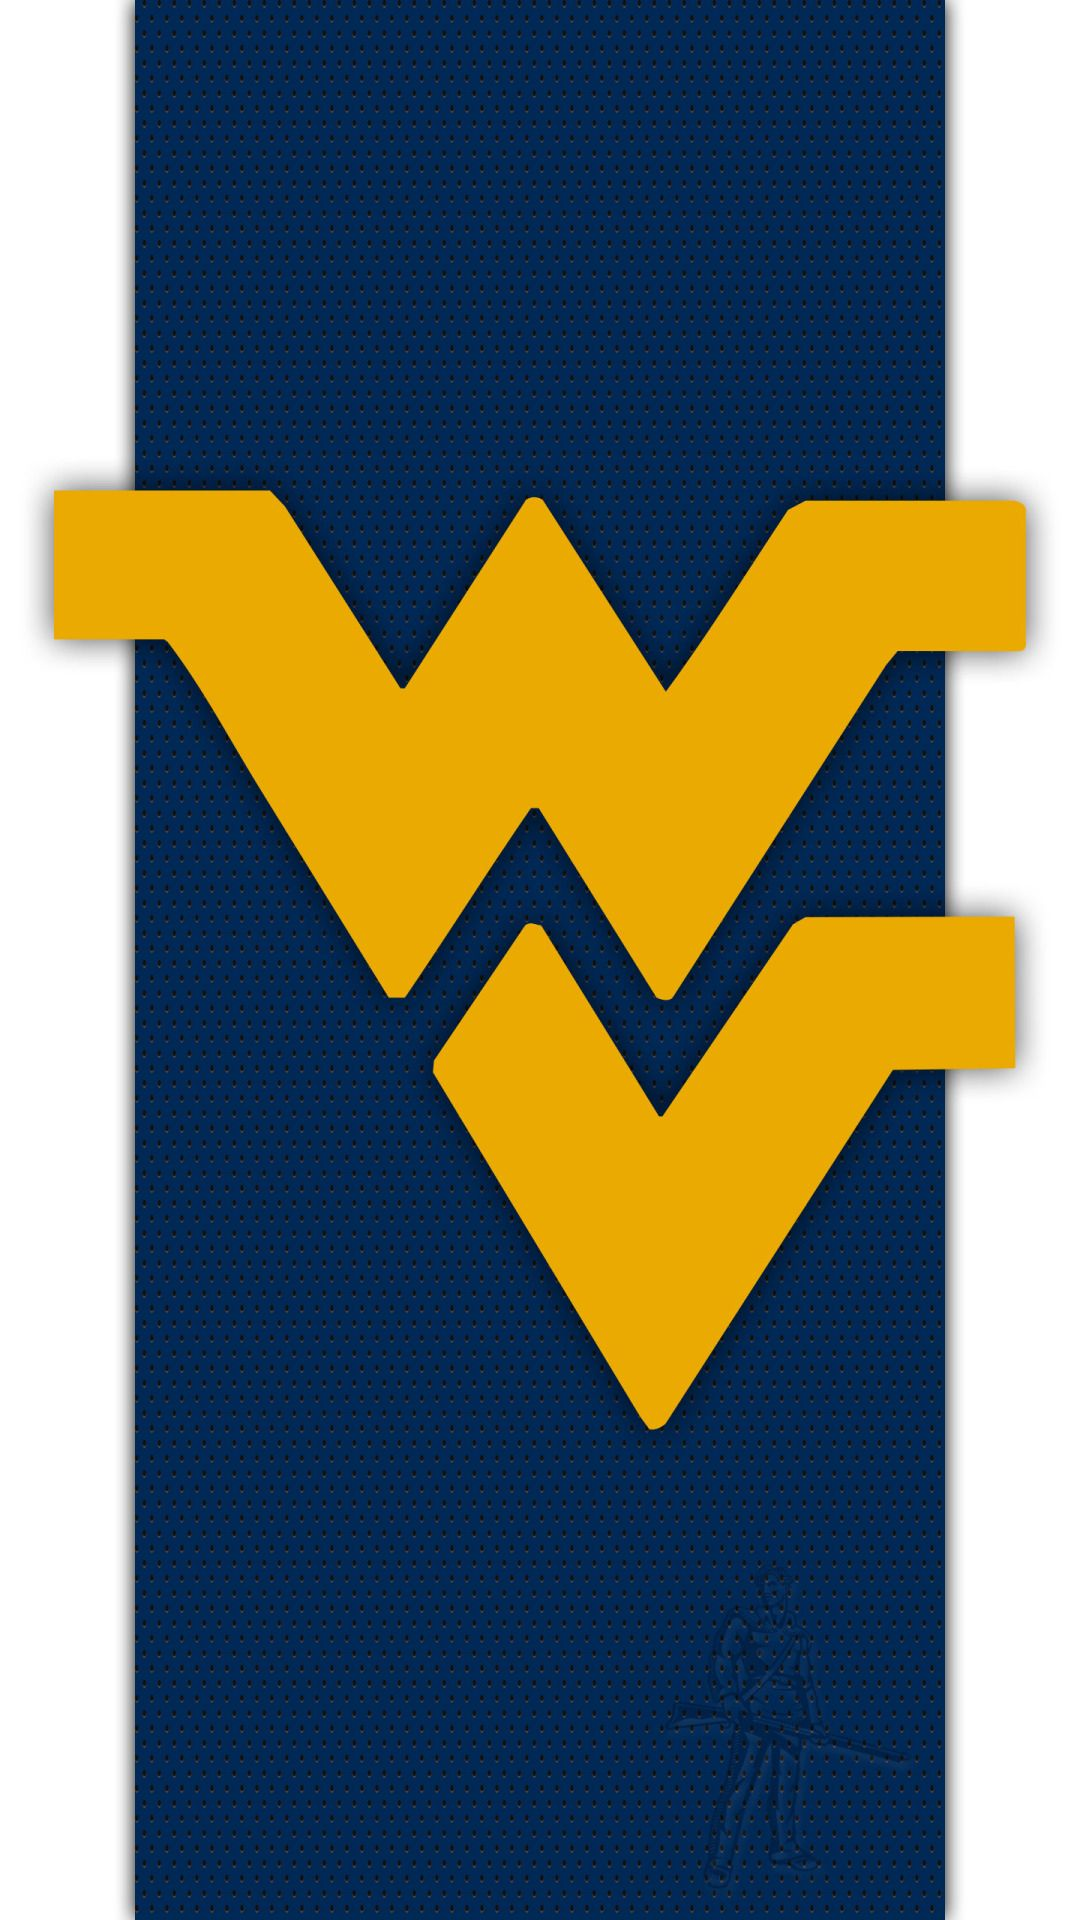 Free West Virginia Mountaineers Iphone Ipod Touch Wallpapers Wallpaper Love Wallpaper Iphone Wallpaper